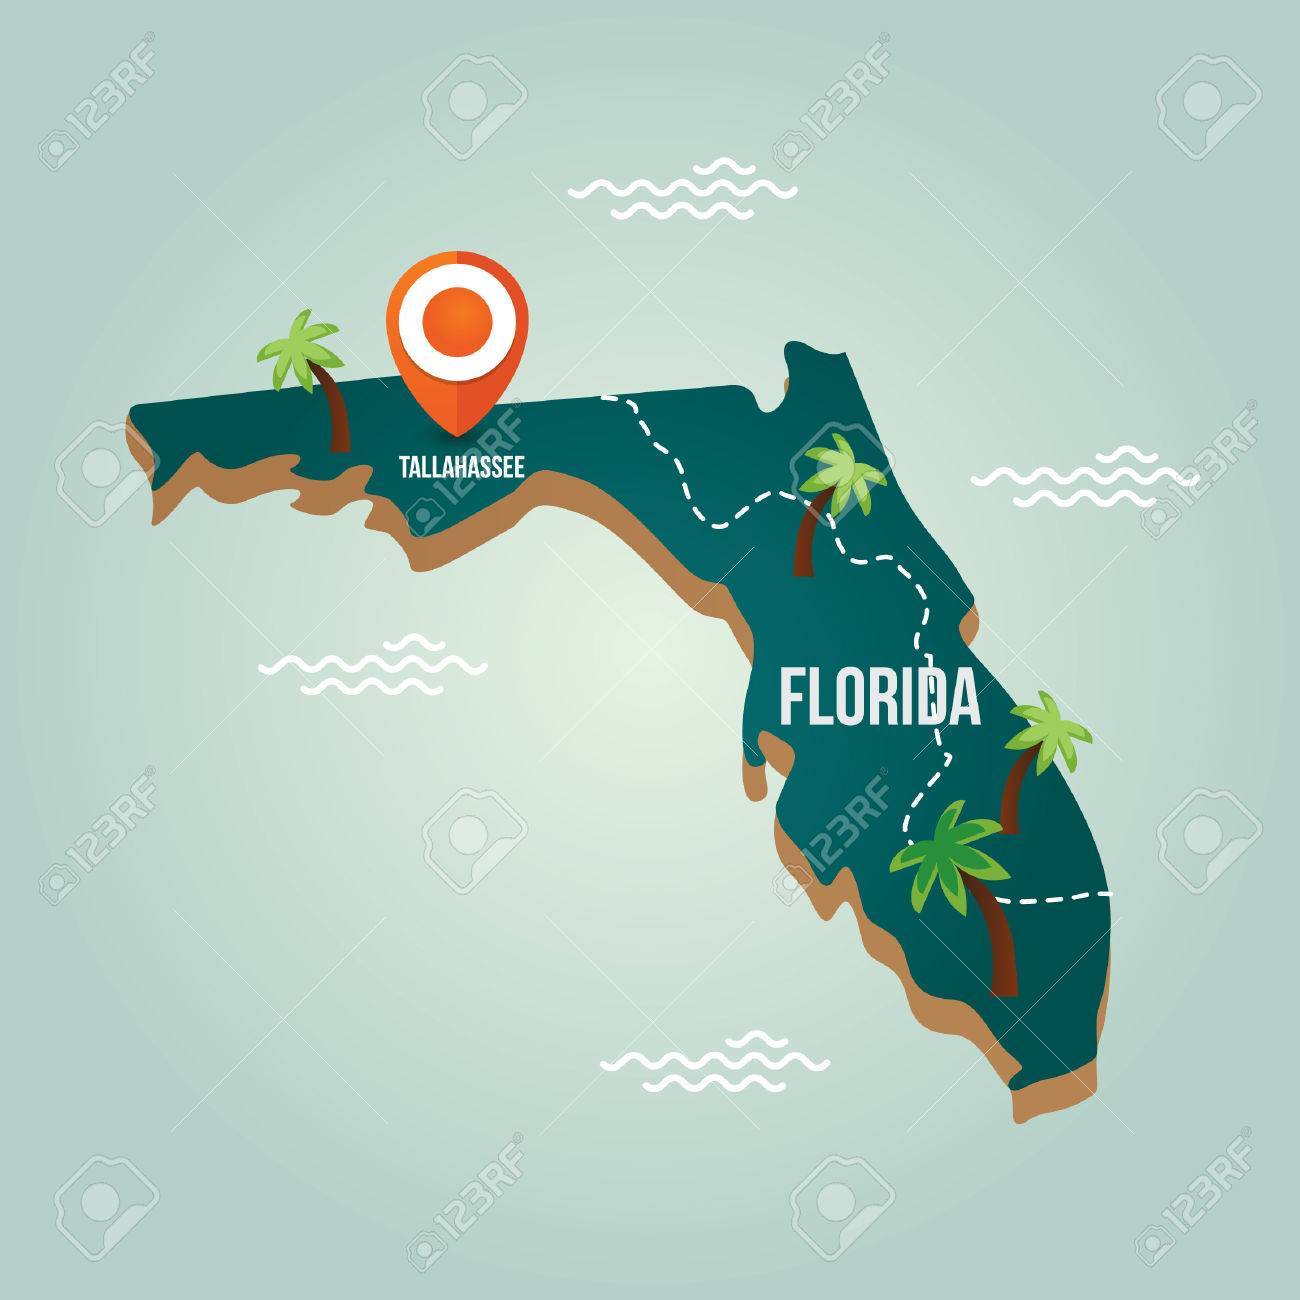 Map Of Florida FDOT I Rest Areas PDE Study Biking The Florida - Florida map showing cities